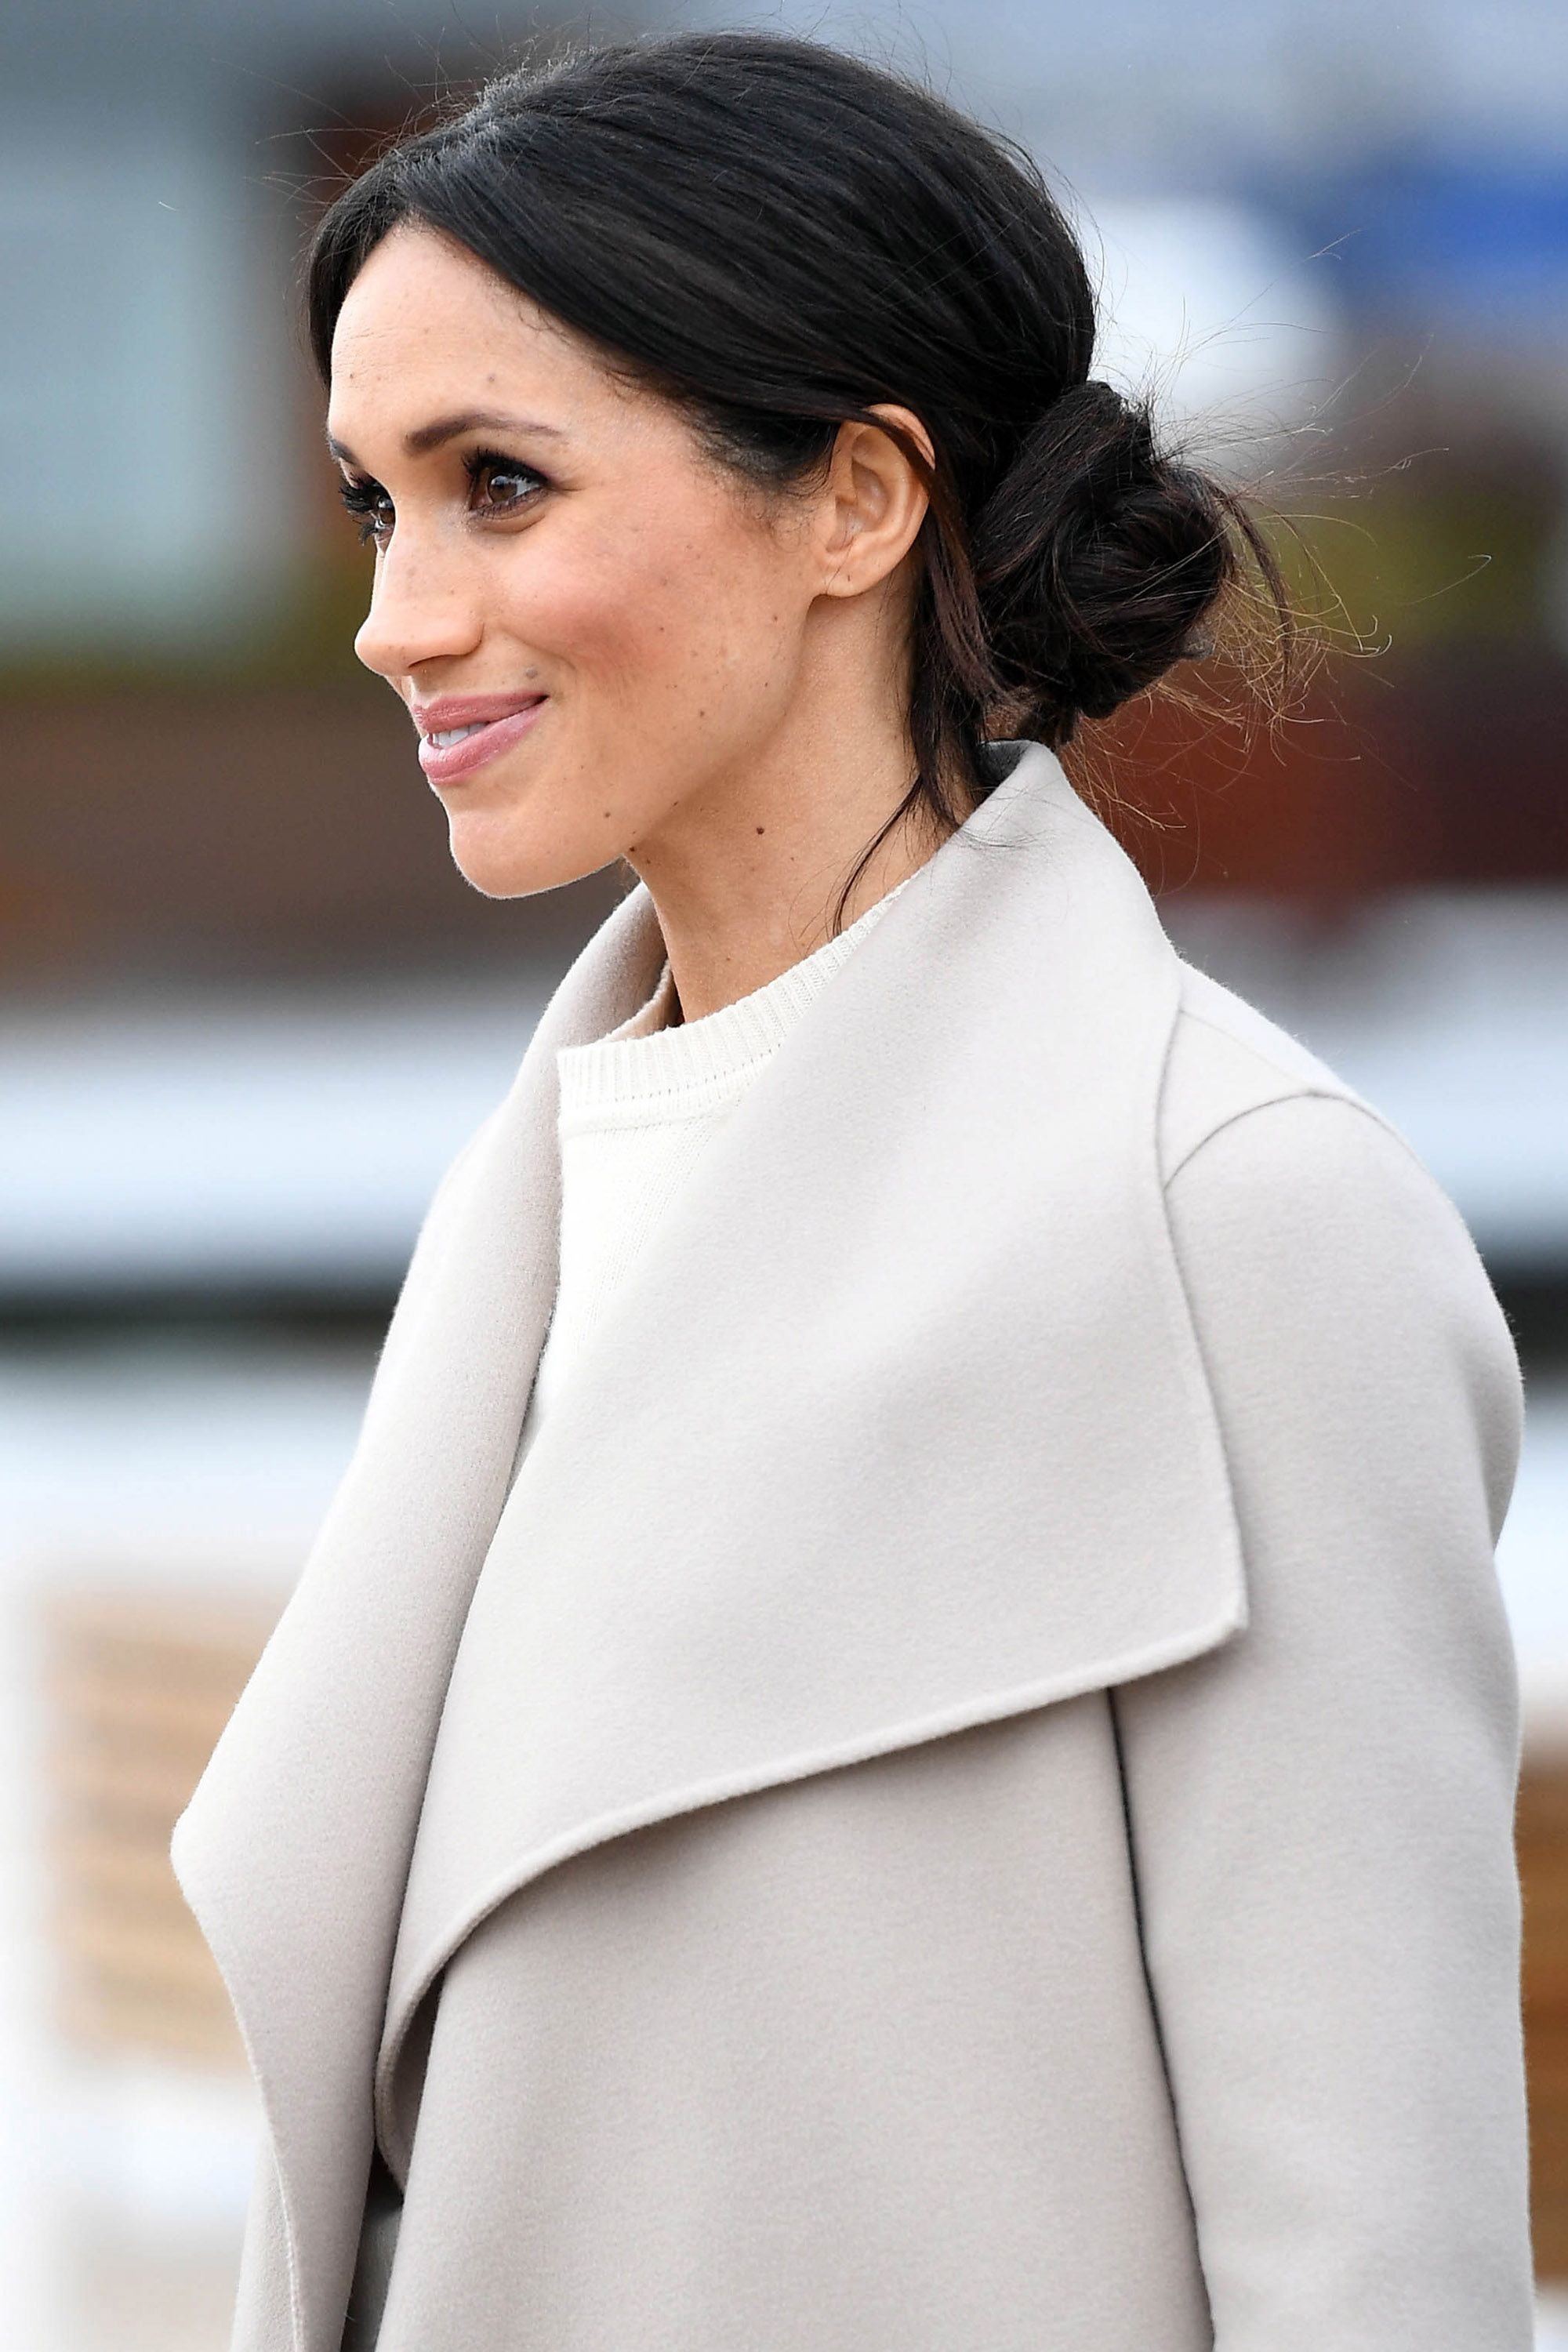 meghan markle facts - 30 things you didn't know about meghan markle